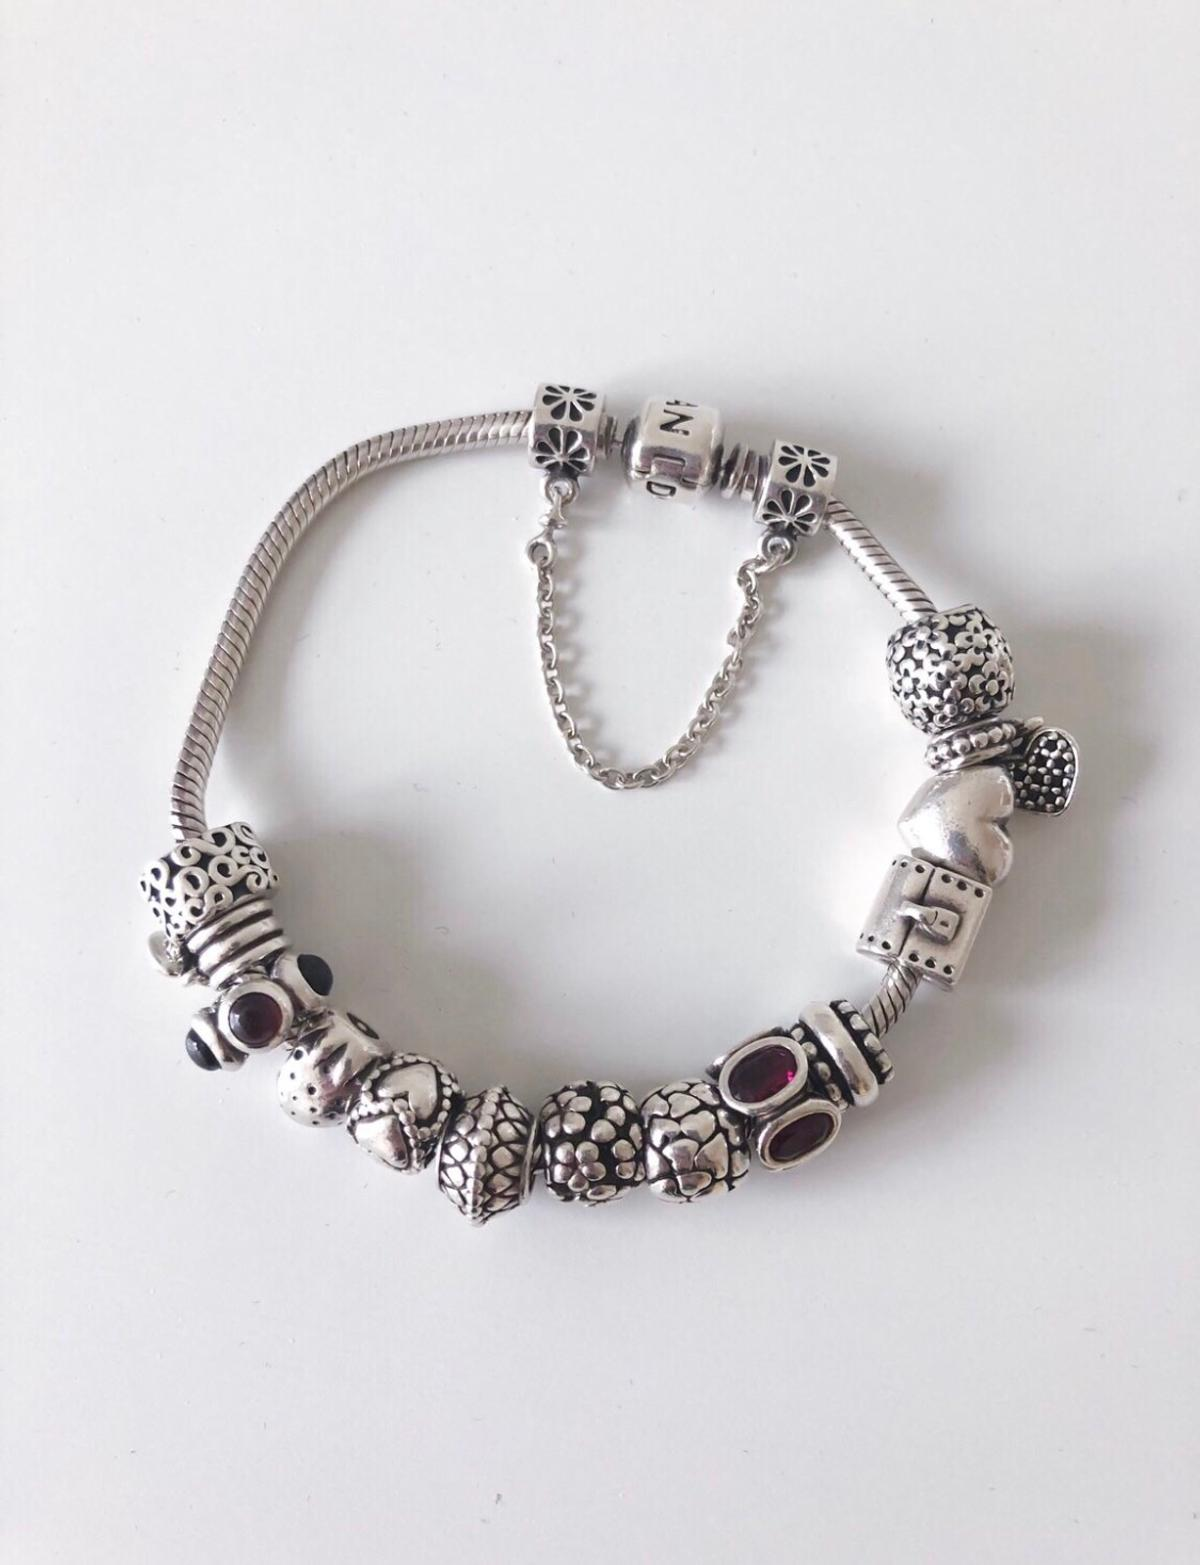 Pandora Bracelet Genuine With 14 Charms In Wigan For 105 00 For Sale Shpock